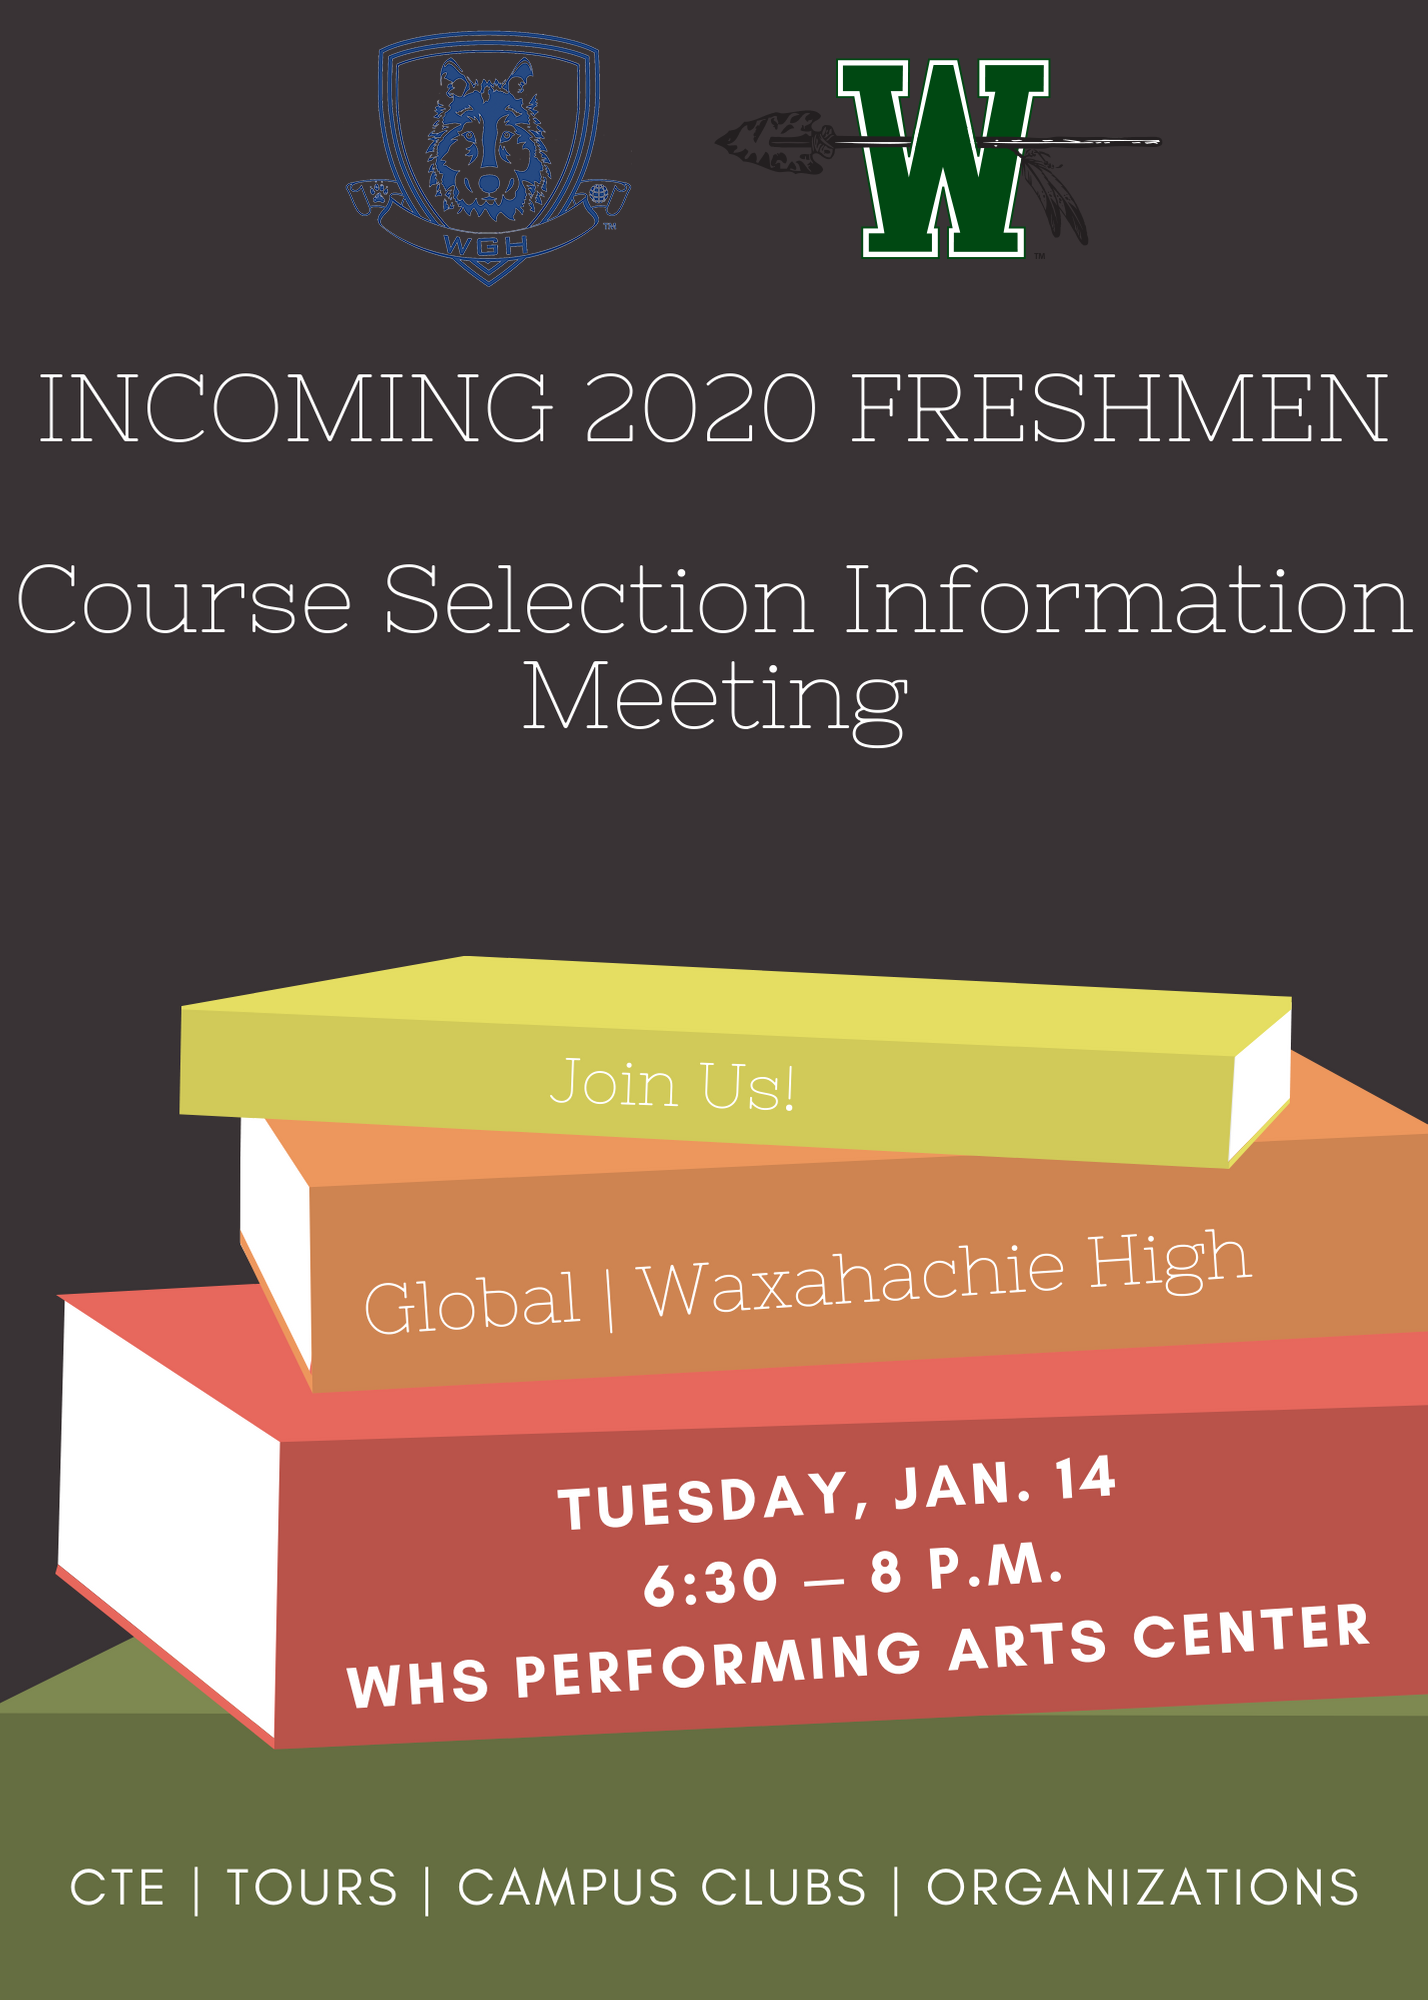 Incoming freshmen course selection informational meeting on January 14